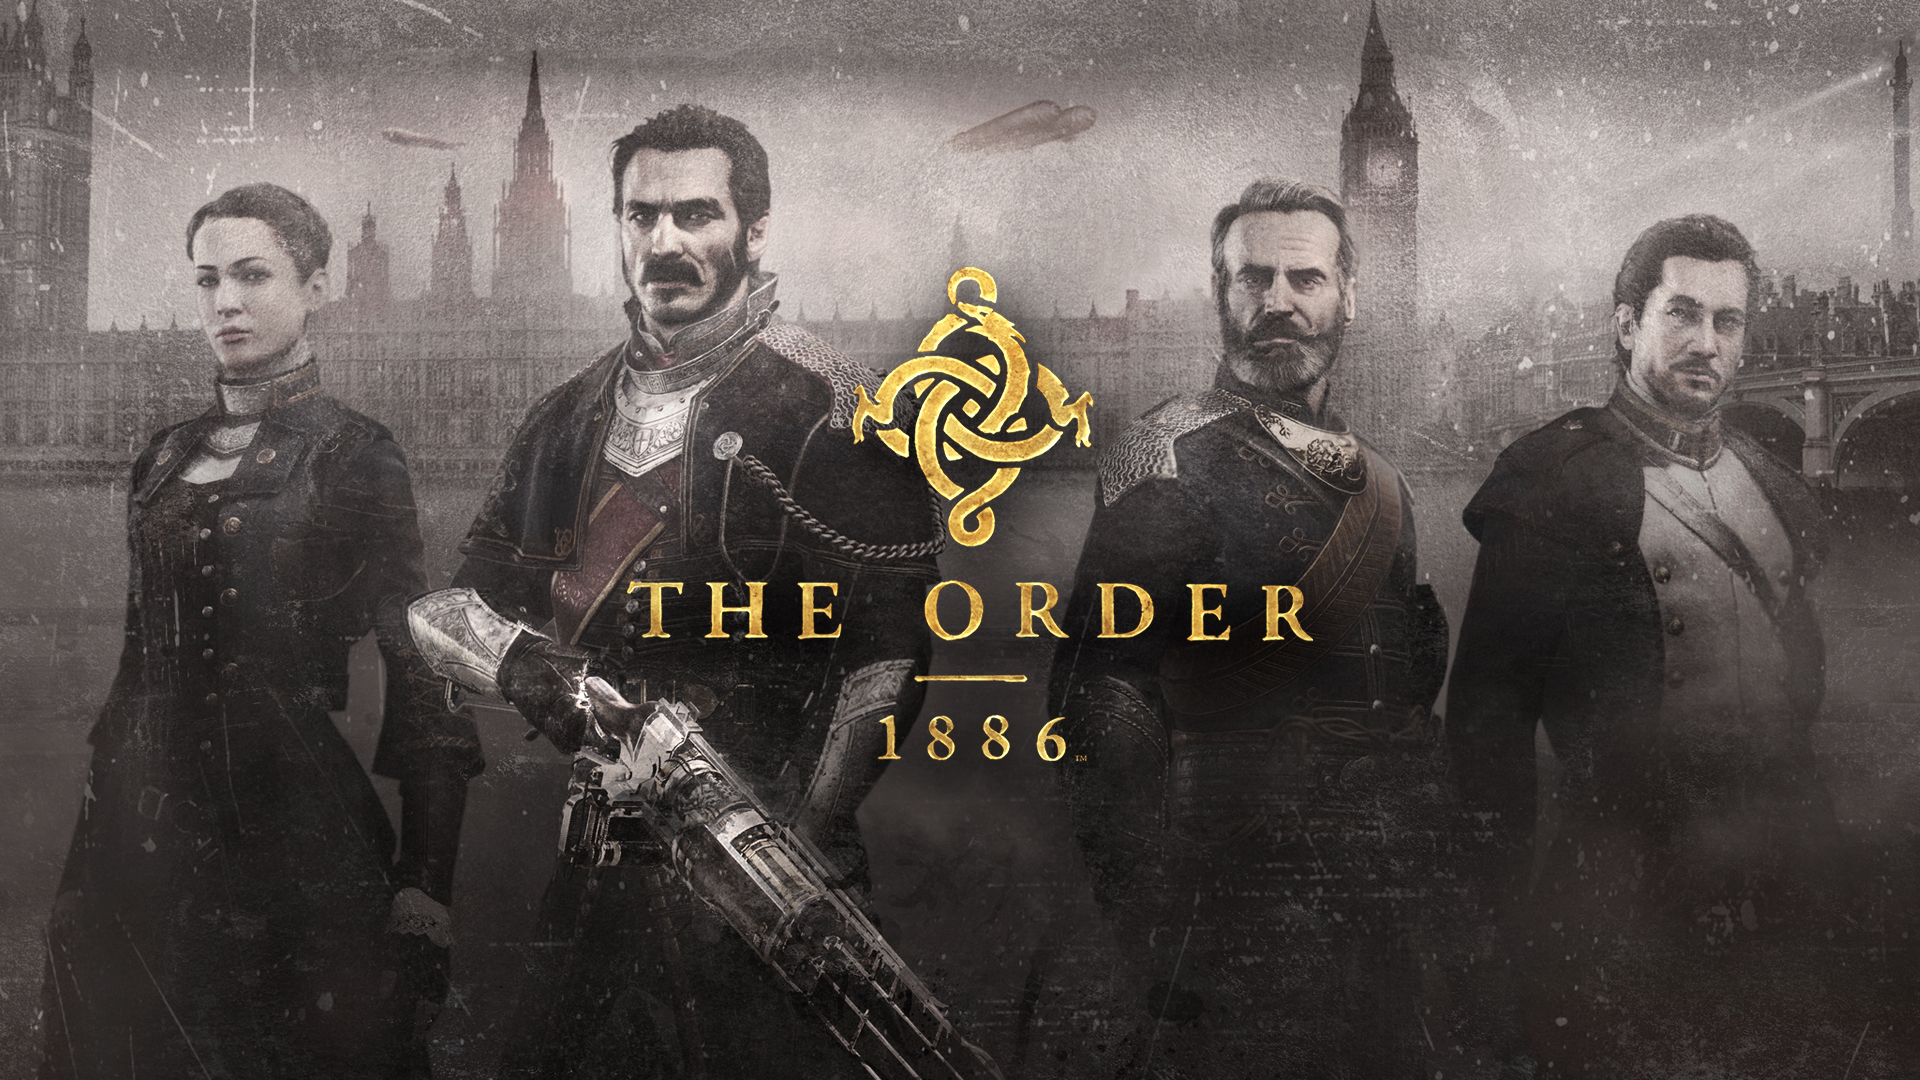 Ps 4 Exclusive The Order 1886